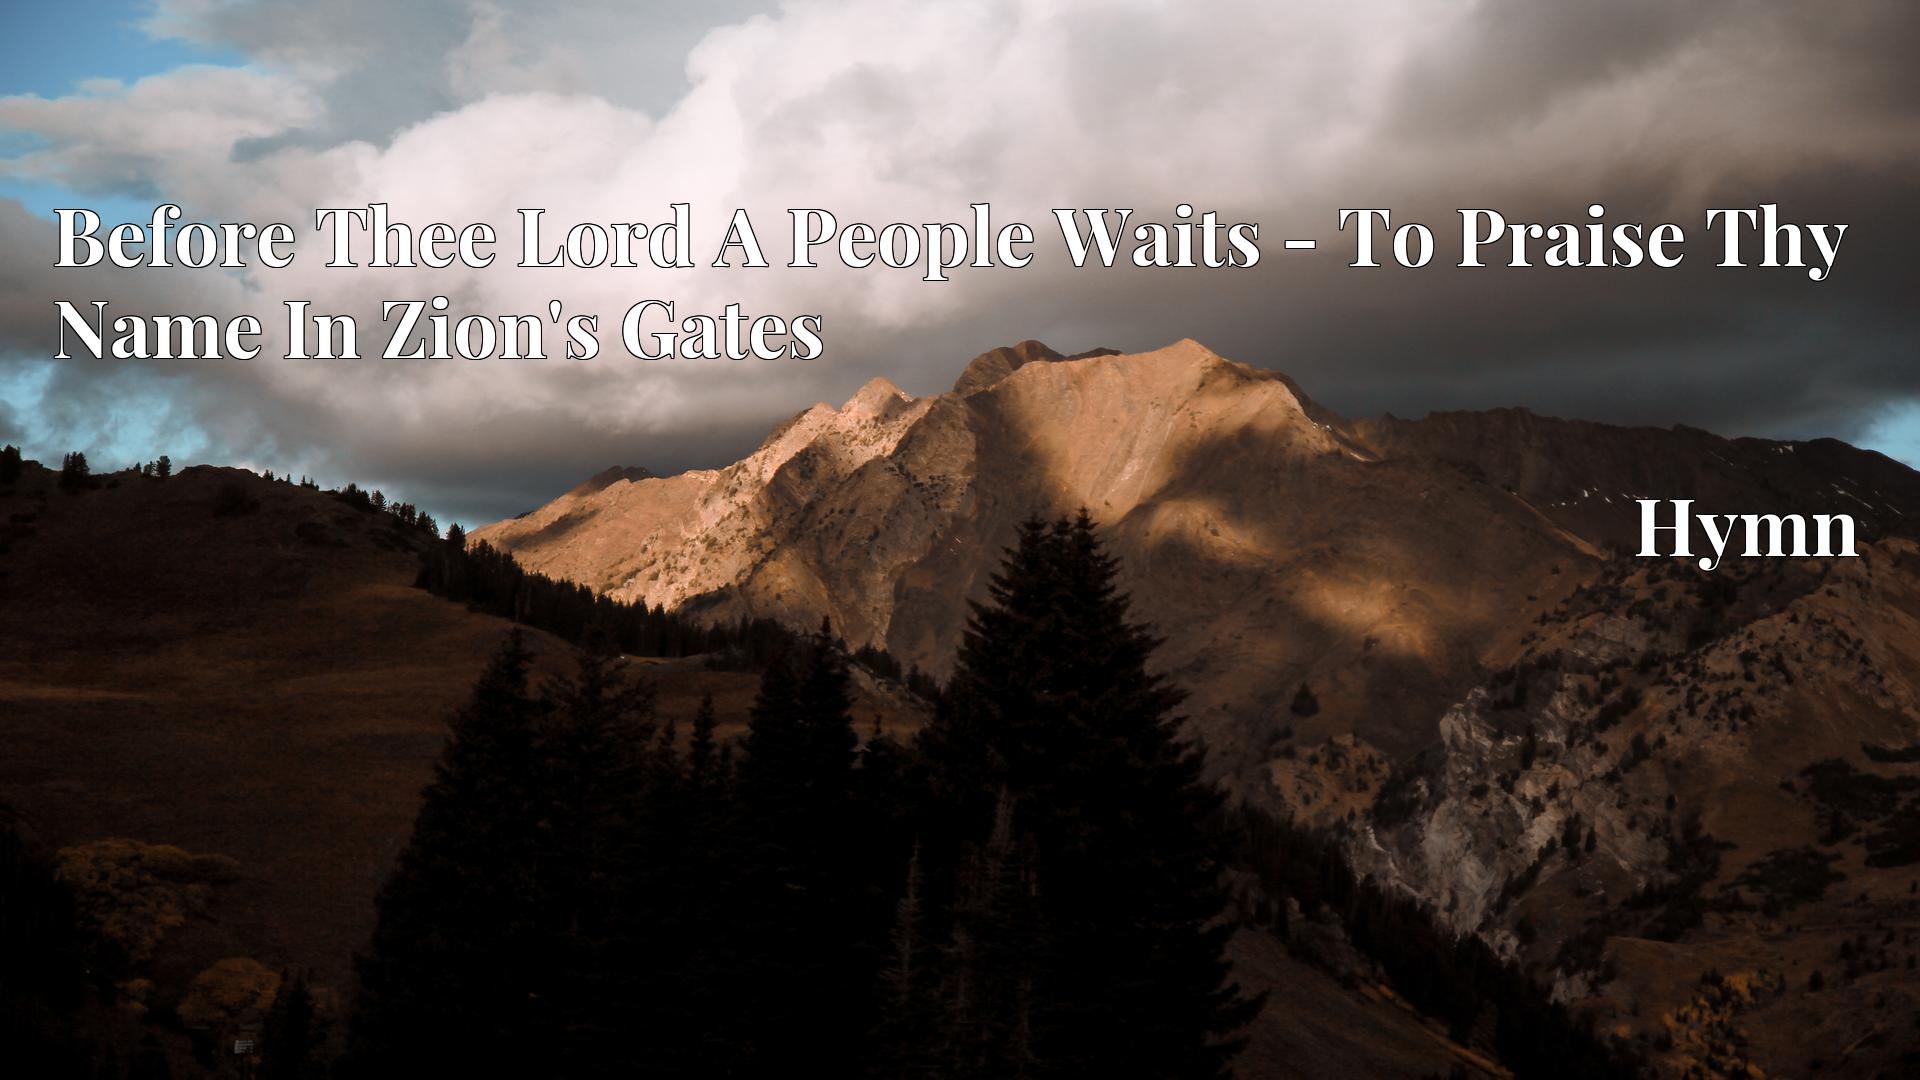 Before Thee Lord A People Waits - To Praise Thy Name In Zion's Gates Hymn